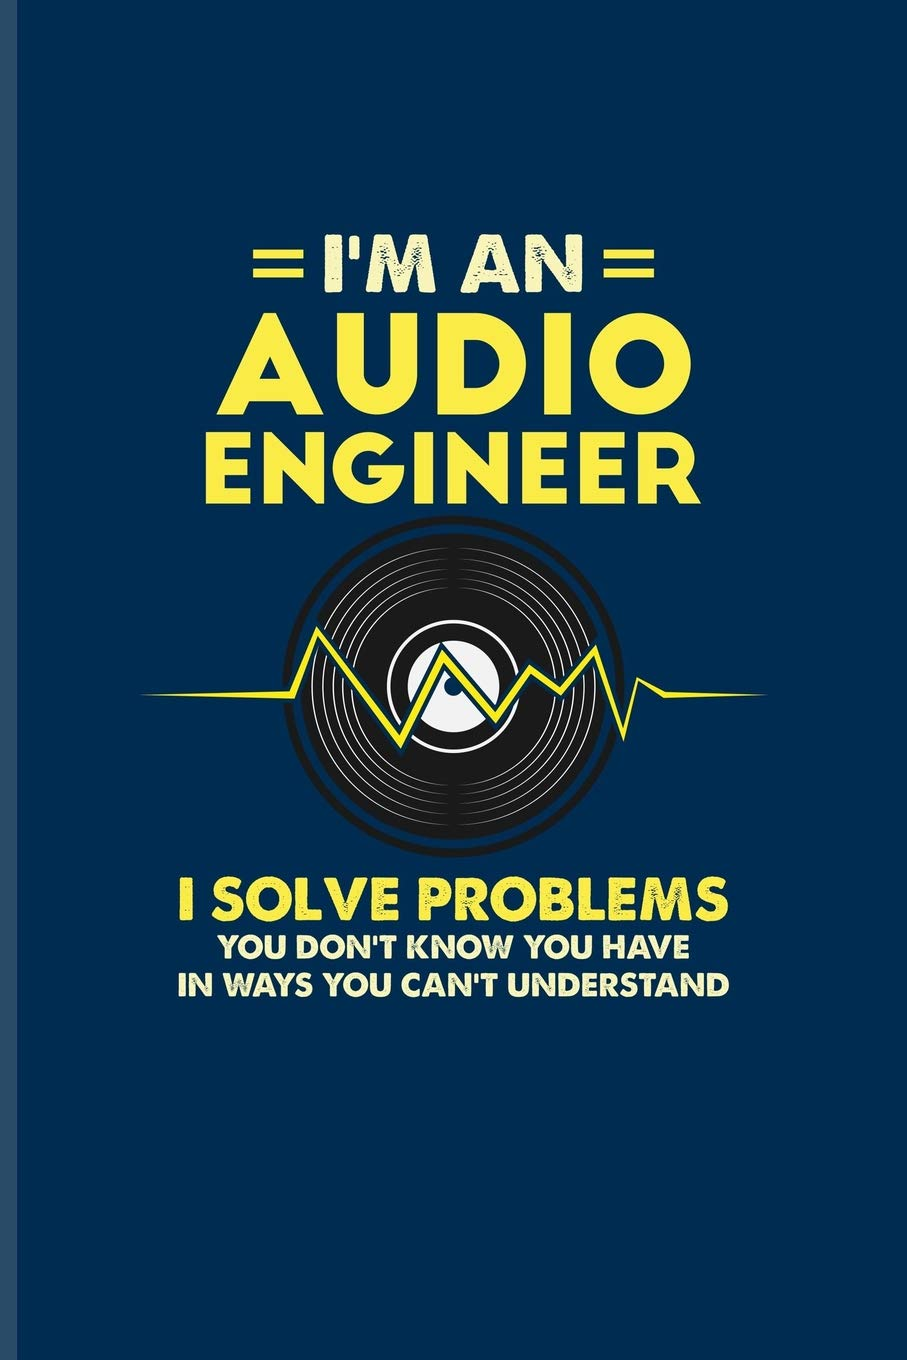 I M An Audio Engineer I Solve Problems You Don T Know You Have In Ways You Can T Understand Funny Music Quotes Journal For Sound Engineer Audio Sound Tech Fans 6x9